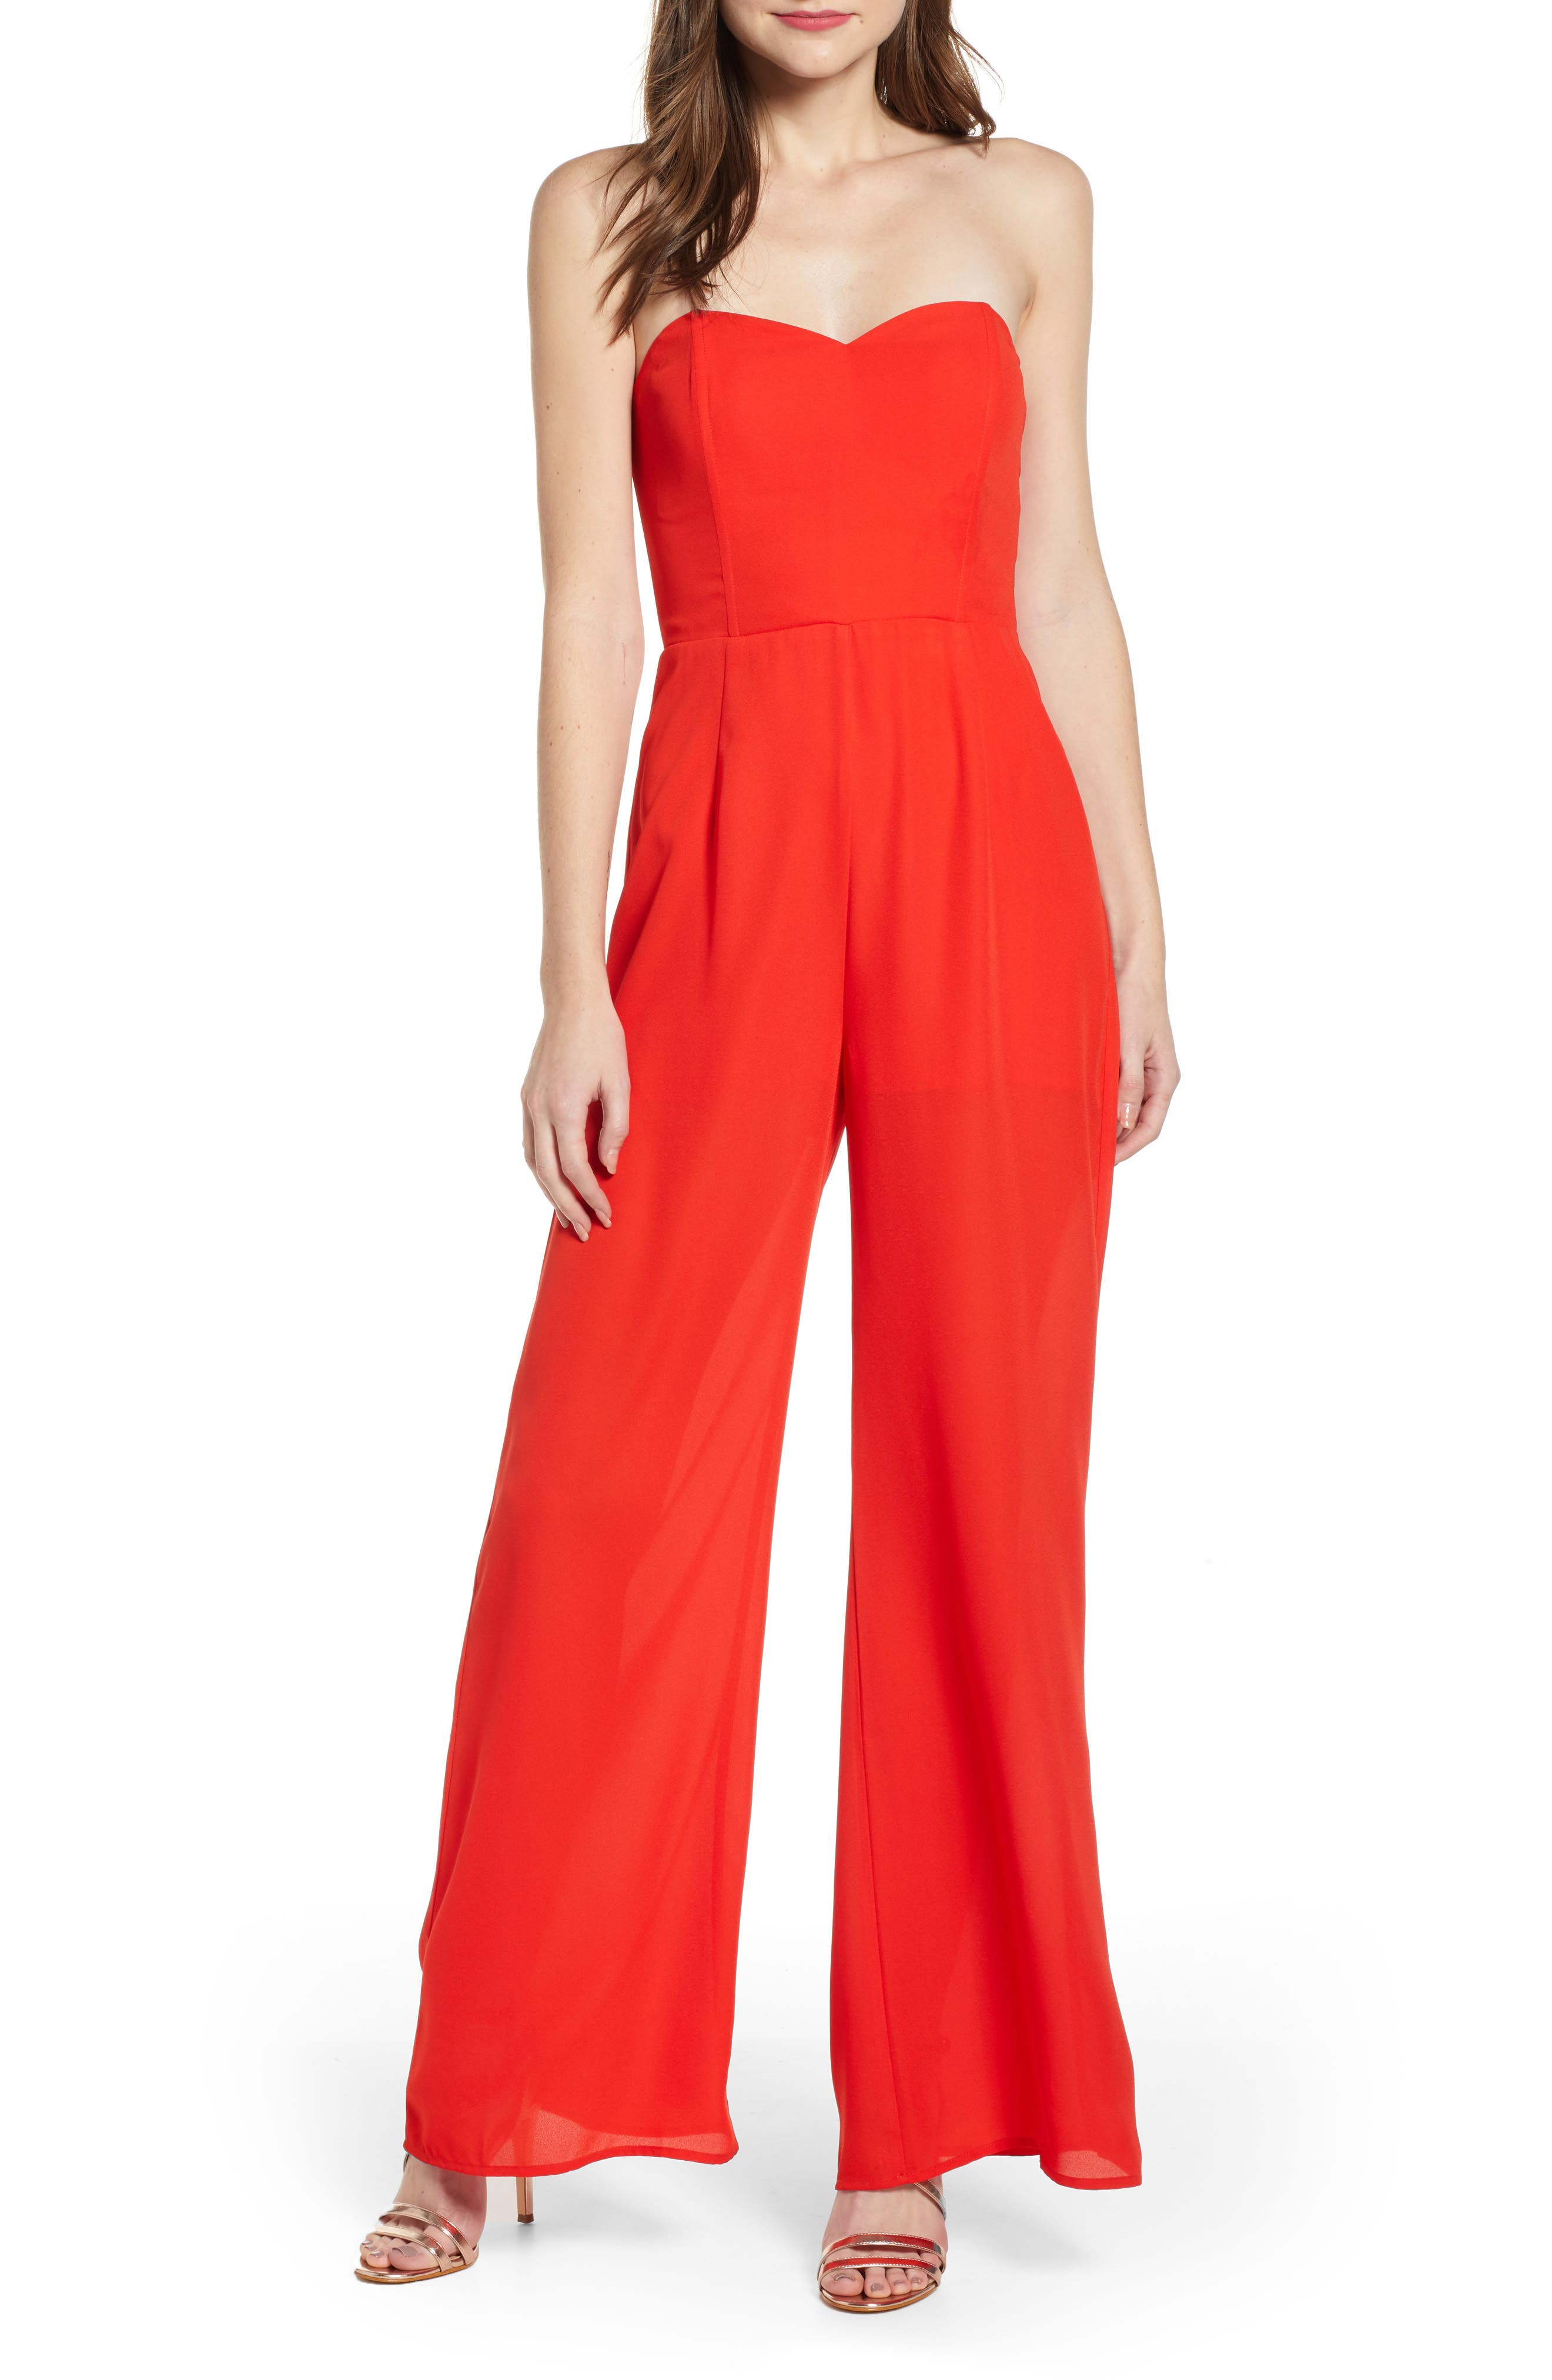 LEITH, Strapless Jumpsuit, Main thumbnail 1, color, RED SCARLET